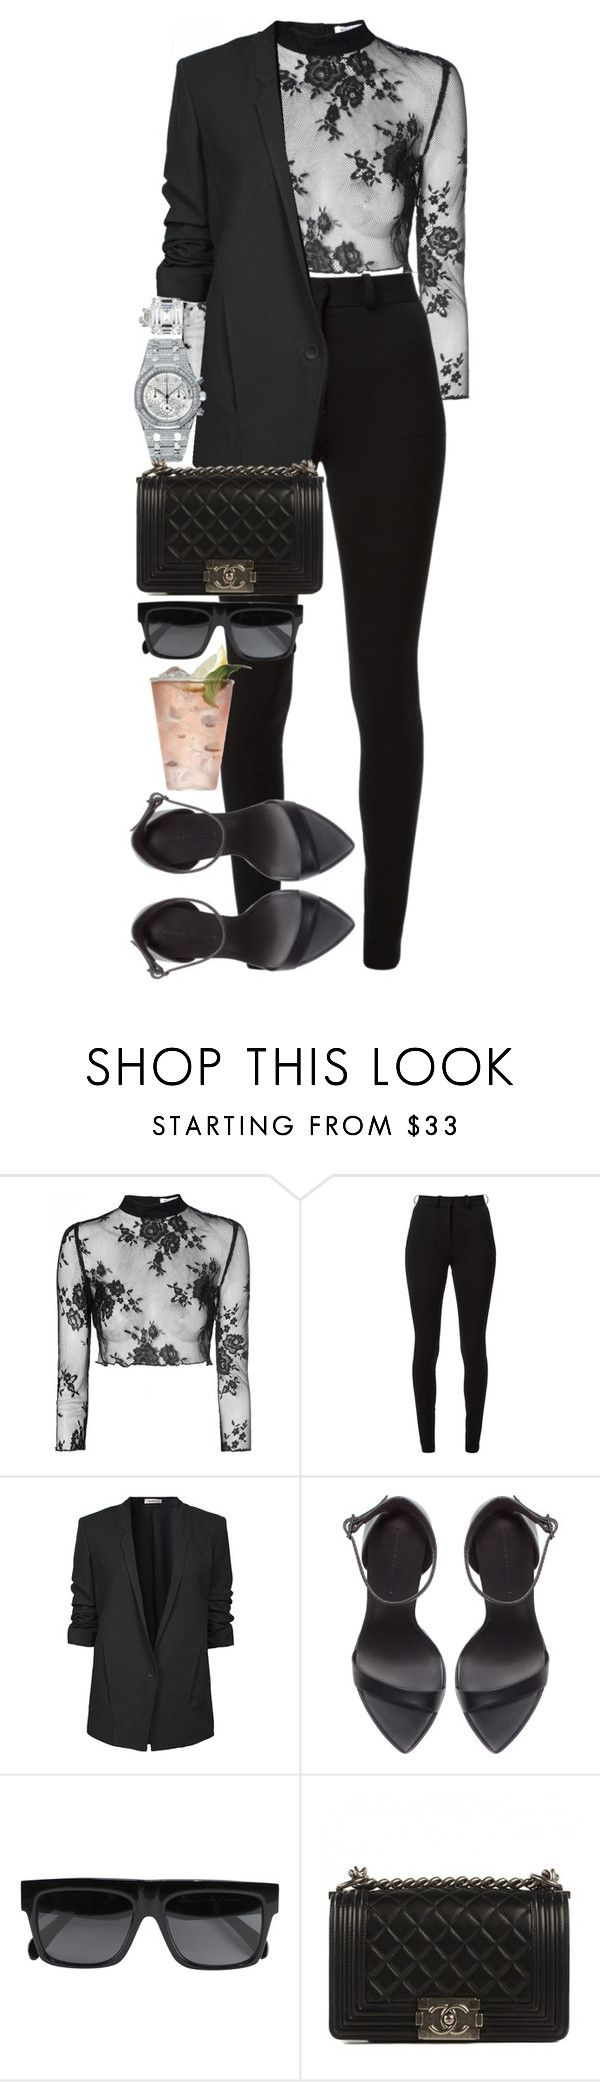 """""""Stupid men are the only ones worth knowing after all."""" by quiche ❤ liked on Polyvore featuring Glamorous, Victoria Beckham, Helmut Lang, Zara, Audemars Piguet, Margarita, CÉLINE and Chanel"""